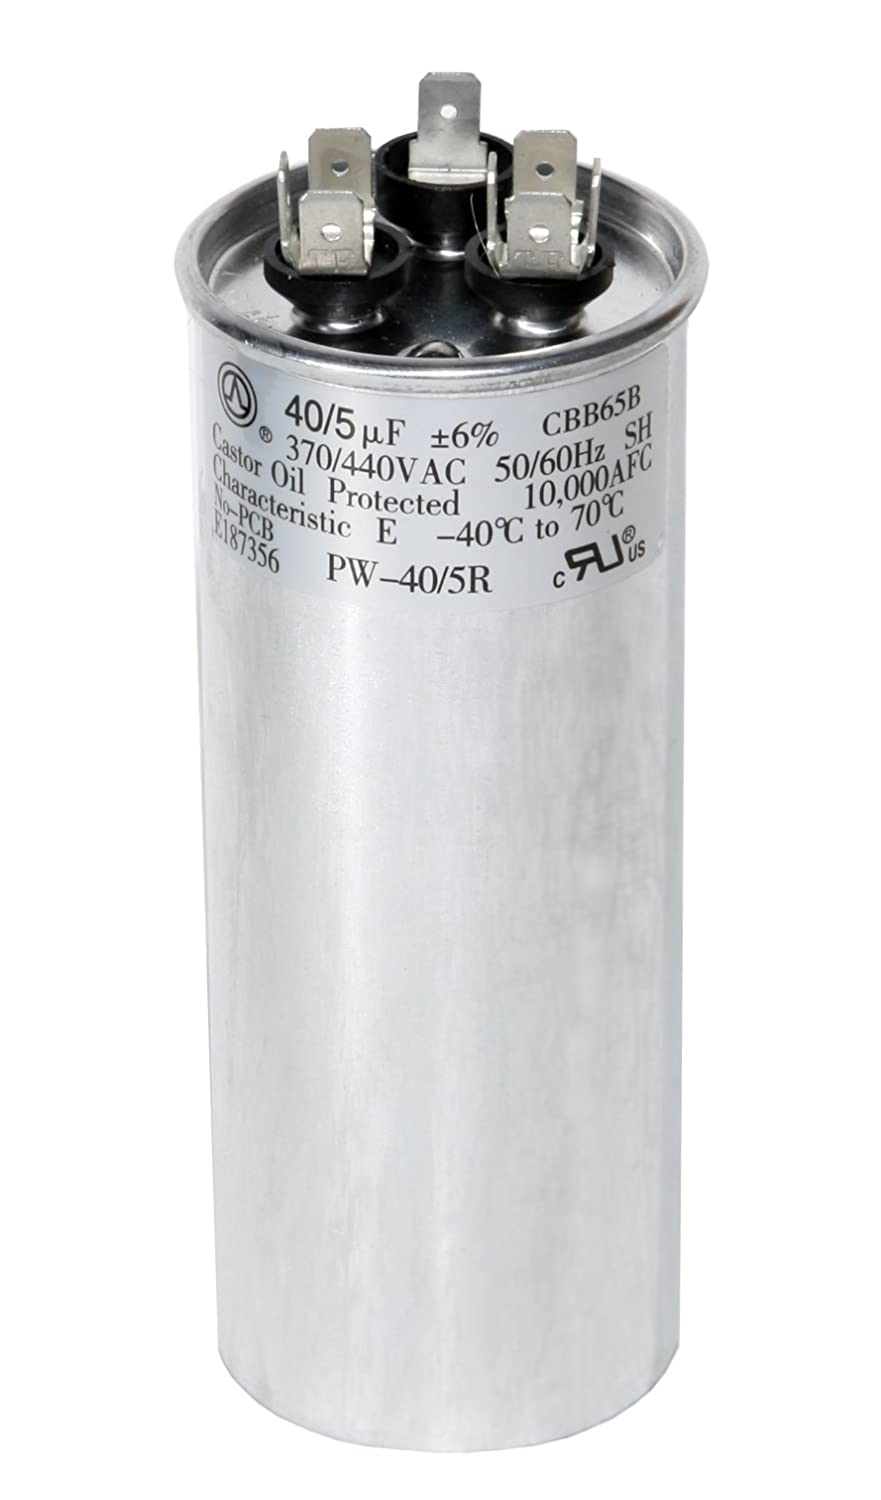 PowerWell 40 + 5 MFD uf 370 VAC or 440 Volt Dual Run Round Capacitor  PW-40/5/R for Condenser Straight Cool or Heat Pump Air Conditioner 40/5  Micro